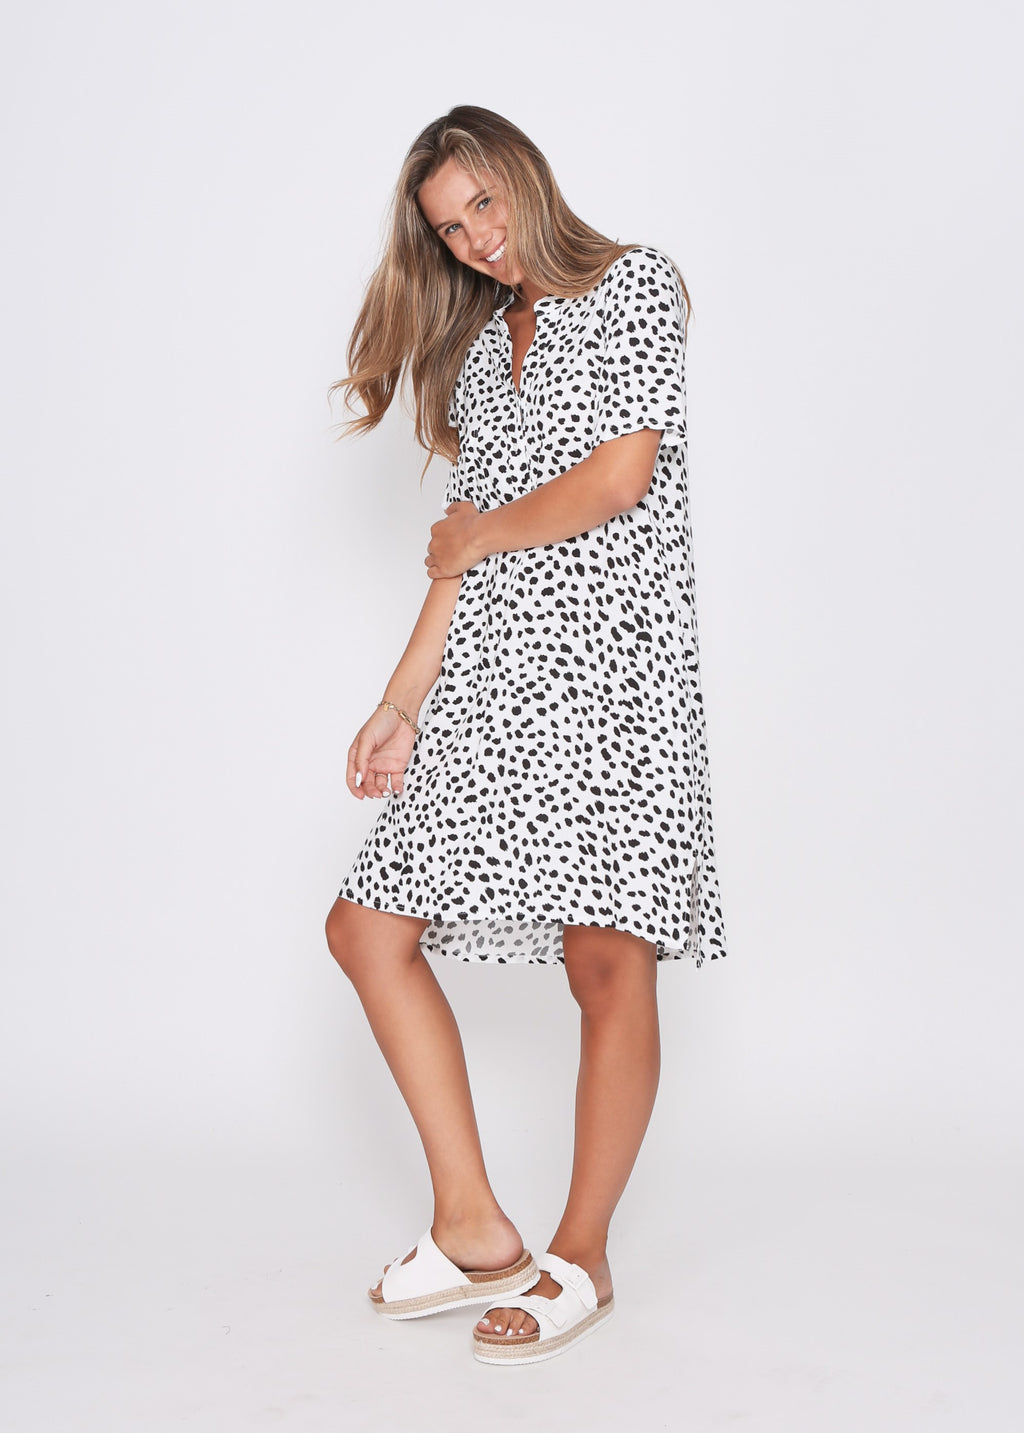 NEW - JEAN DRESS - WHITE/BLACK LEOPARD